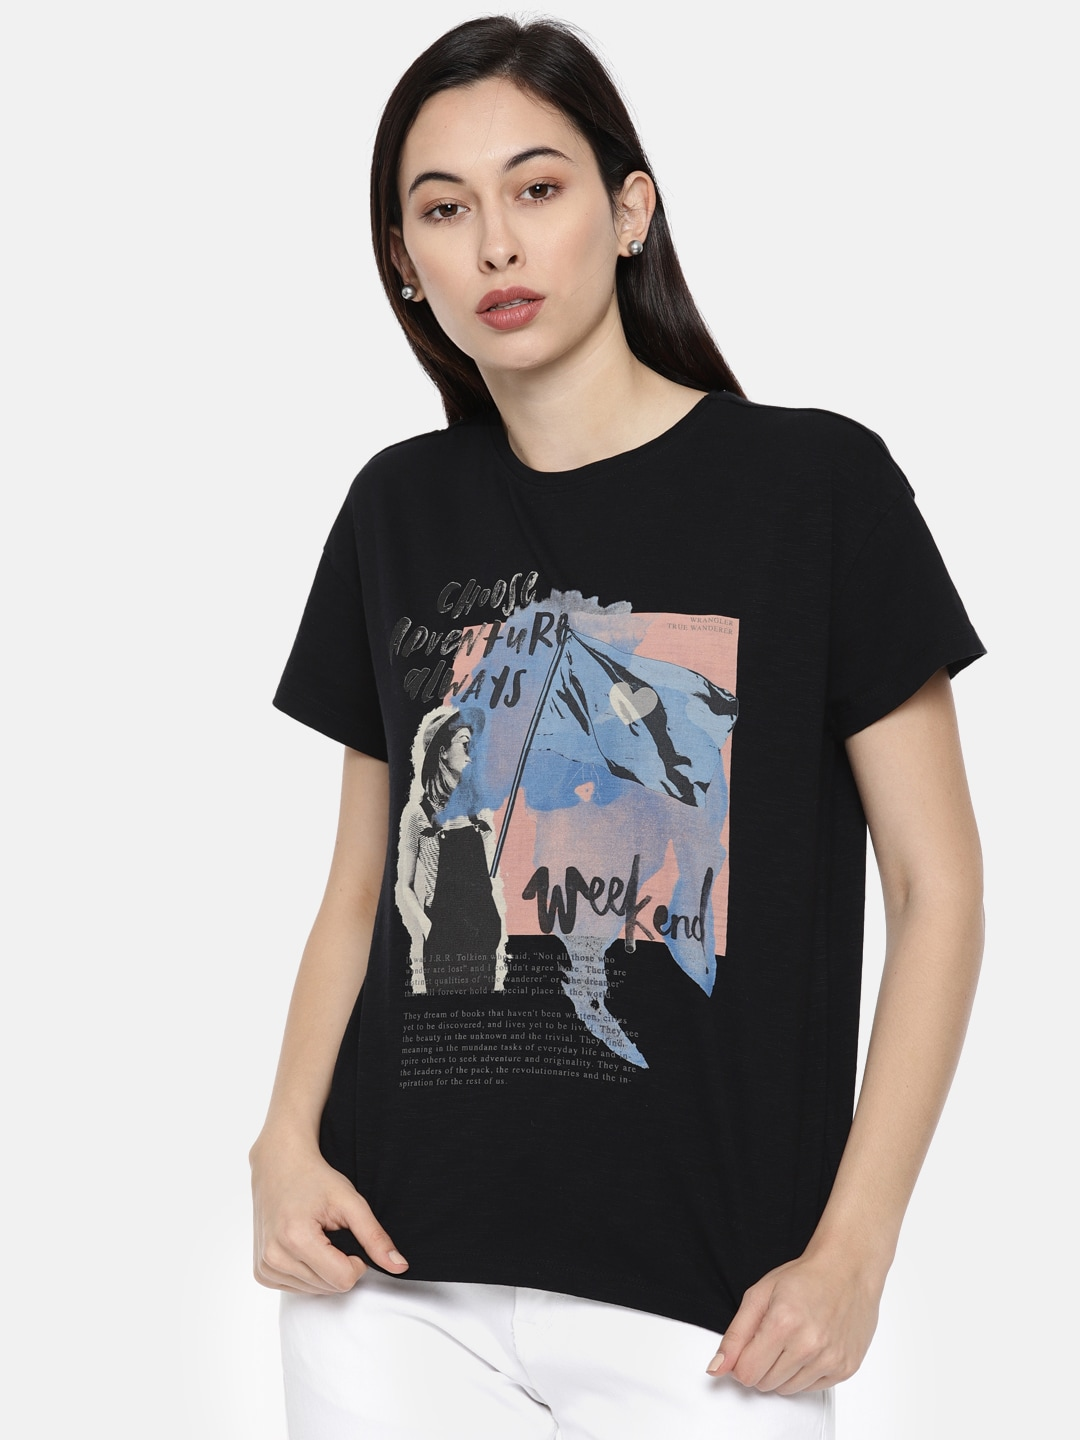 98a725dab Graphic Tshirts For Women - Buy Graphic Tshirts For Women online in India